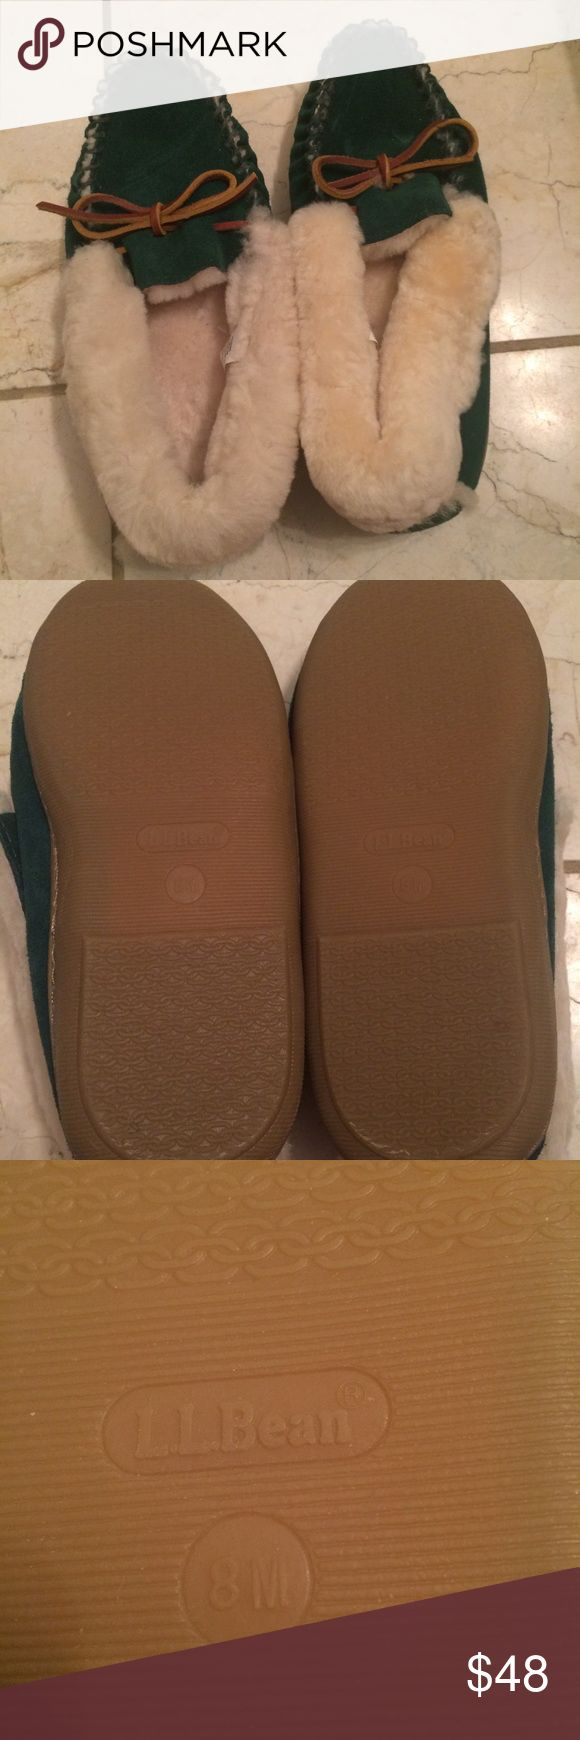 LL Bean Slipper/Moccasins Worn once or twice. Rubber sole so you can wear them outside L.L. Bean Shoes Slippers